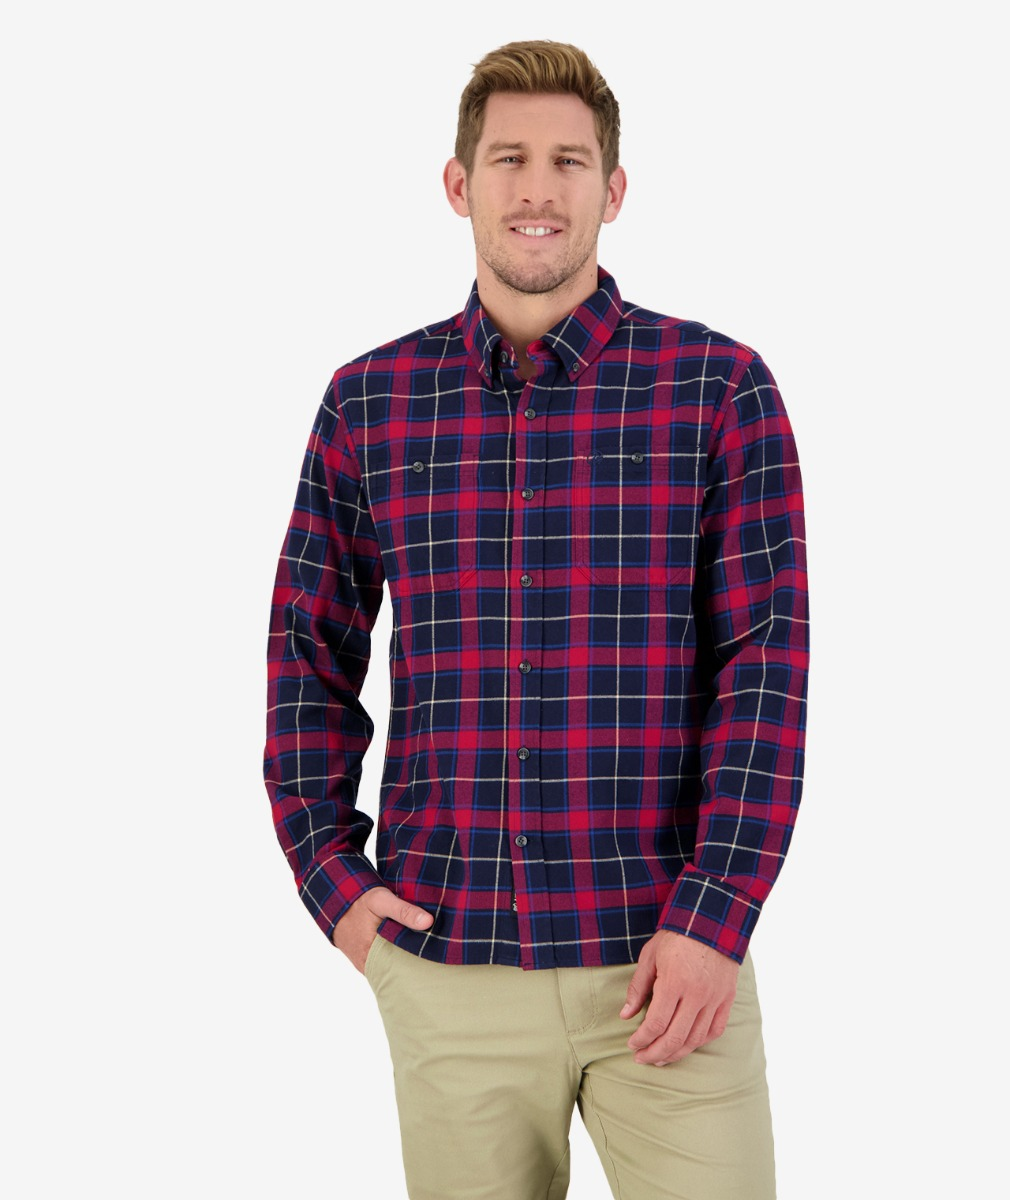 Castleford L/S Shirt in Red